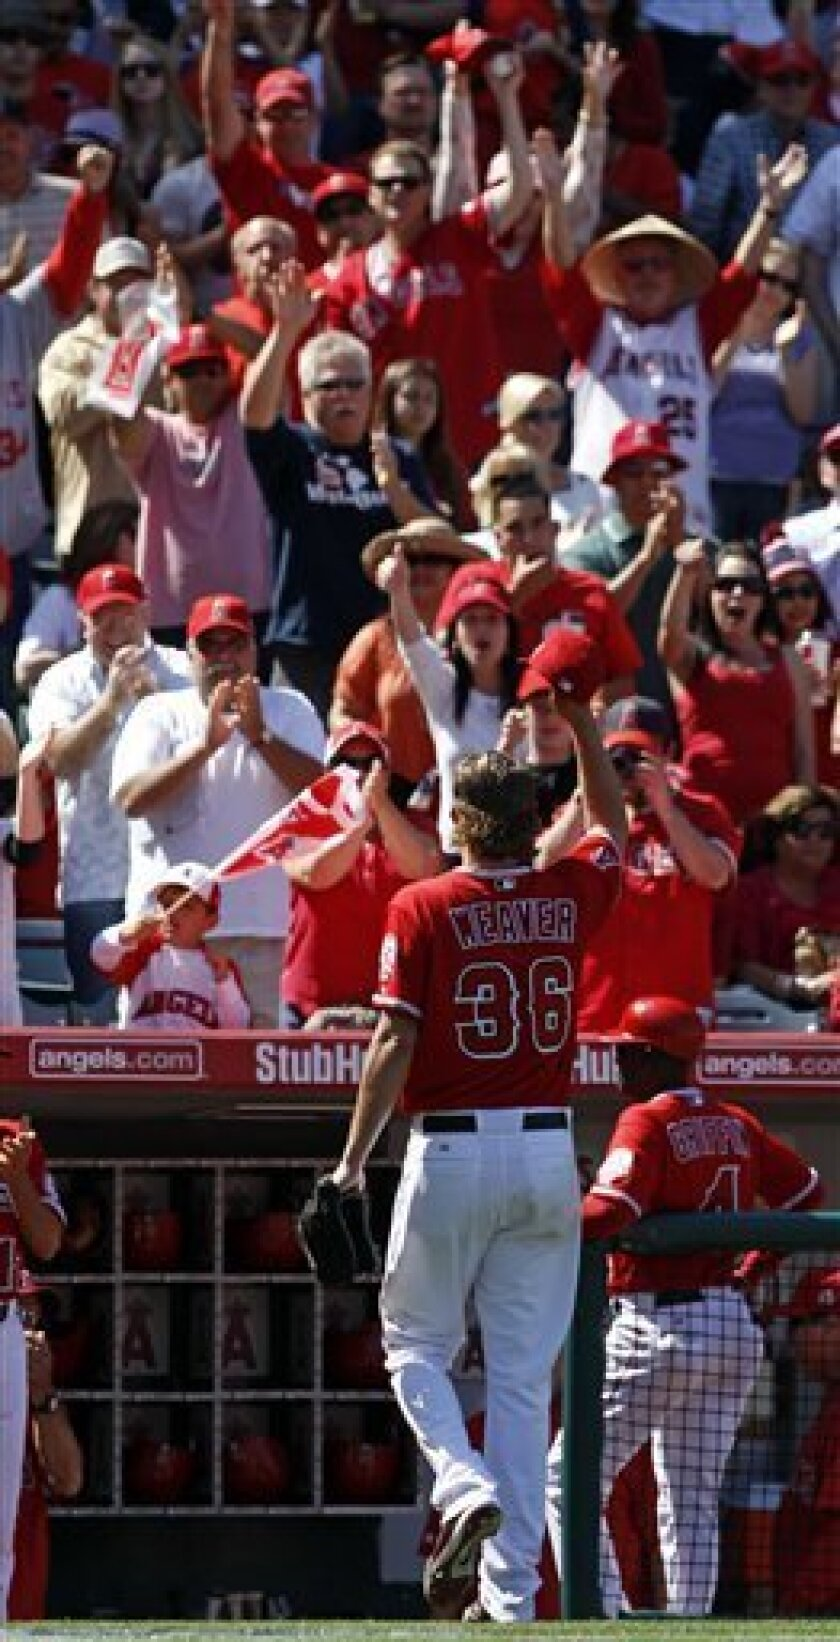 Los Angeles Angels starting pitcher Jered Weaver waves as he leaves the field against the Toronto Blue Jays during the eighth inning of a baseball game in Anaheim, Calif., Sunday, April 10, 2011. (AP Photo/Chris Carlson)